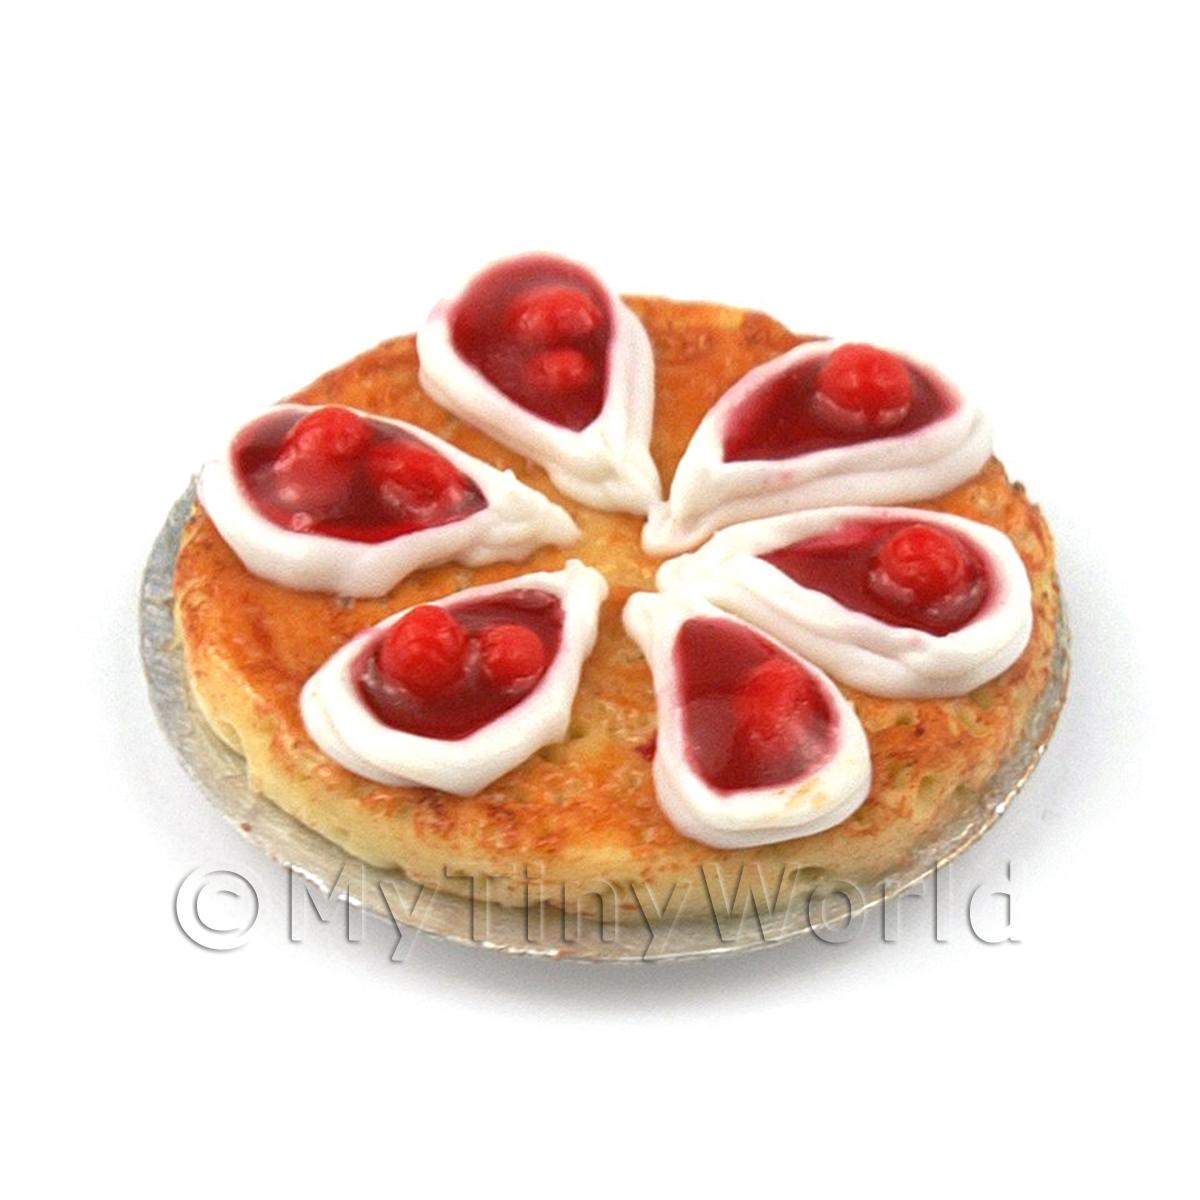 Dolls House Miniature Iced Cherry Topped Pie